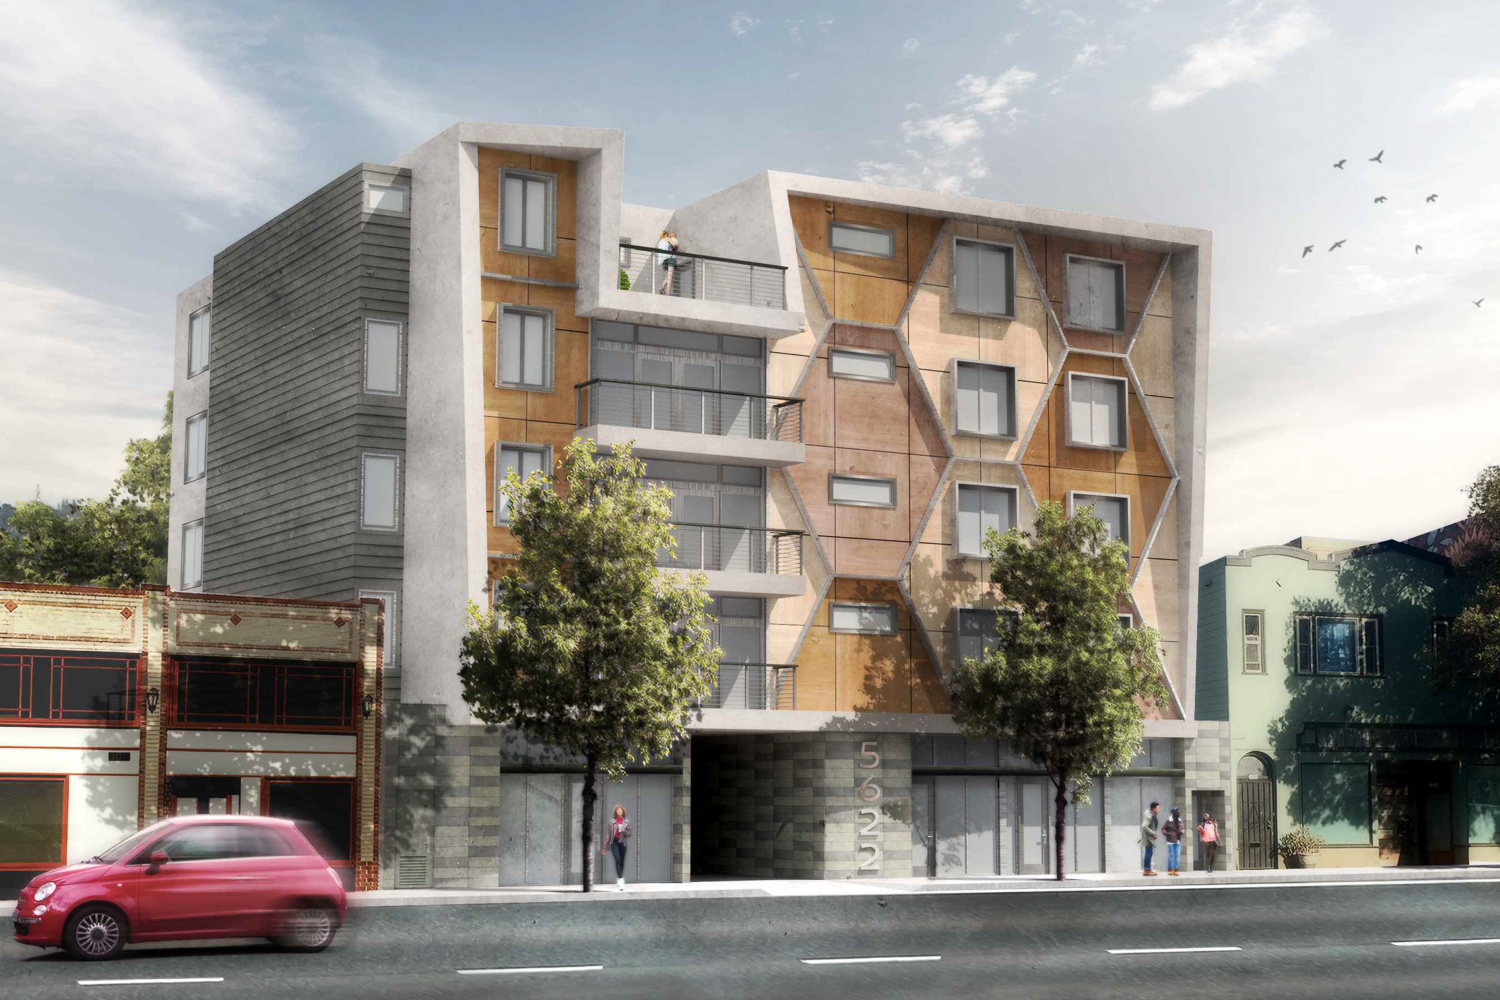 5622 Martin Luther King Jr, rendering by Gunkel Architecture